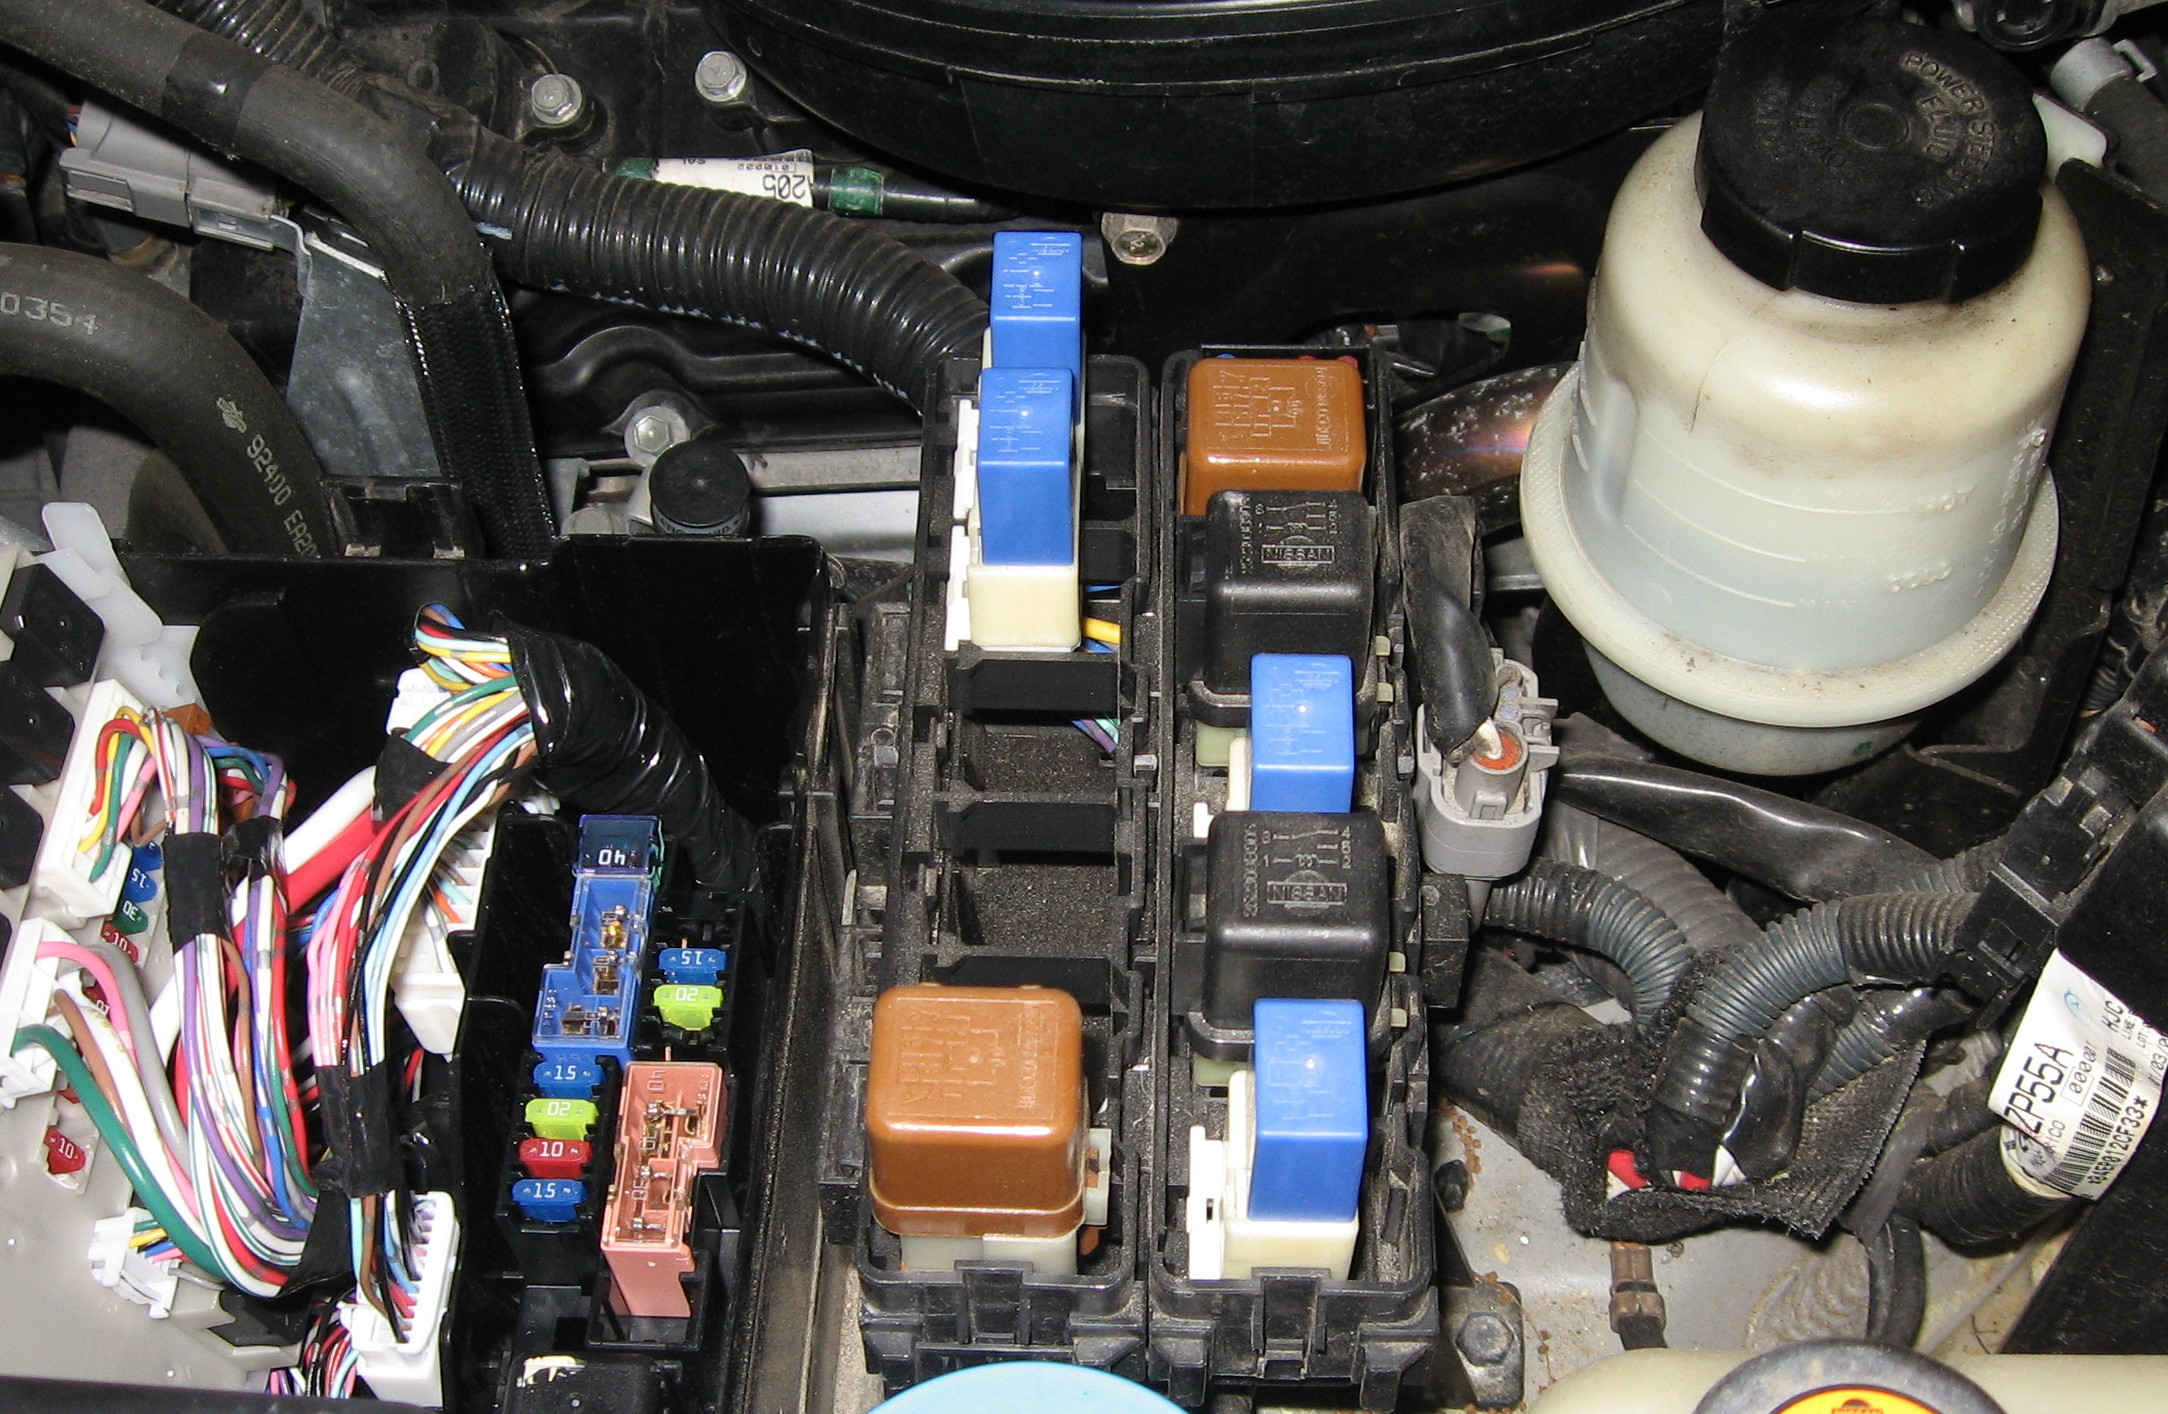 2007 Nissan Frontier installed a four pin wiring harness for a